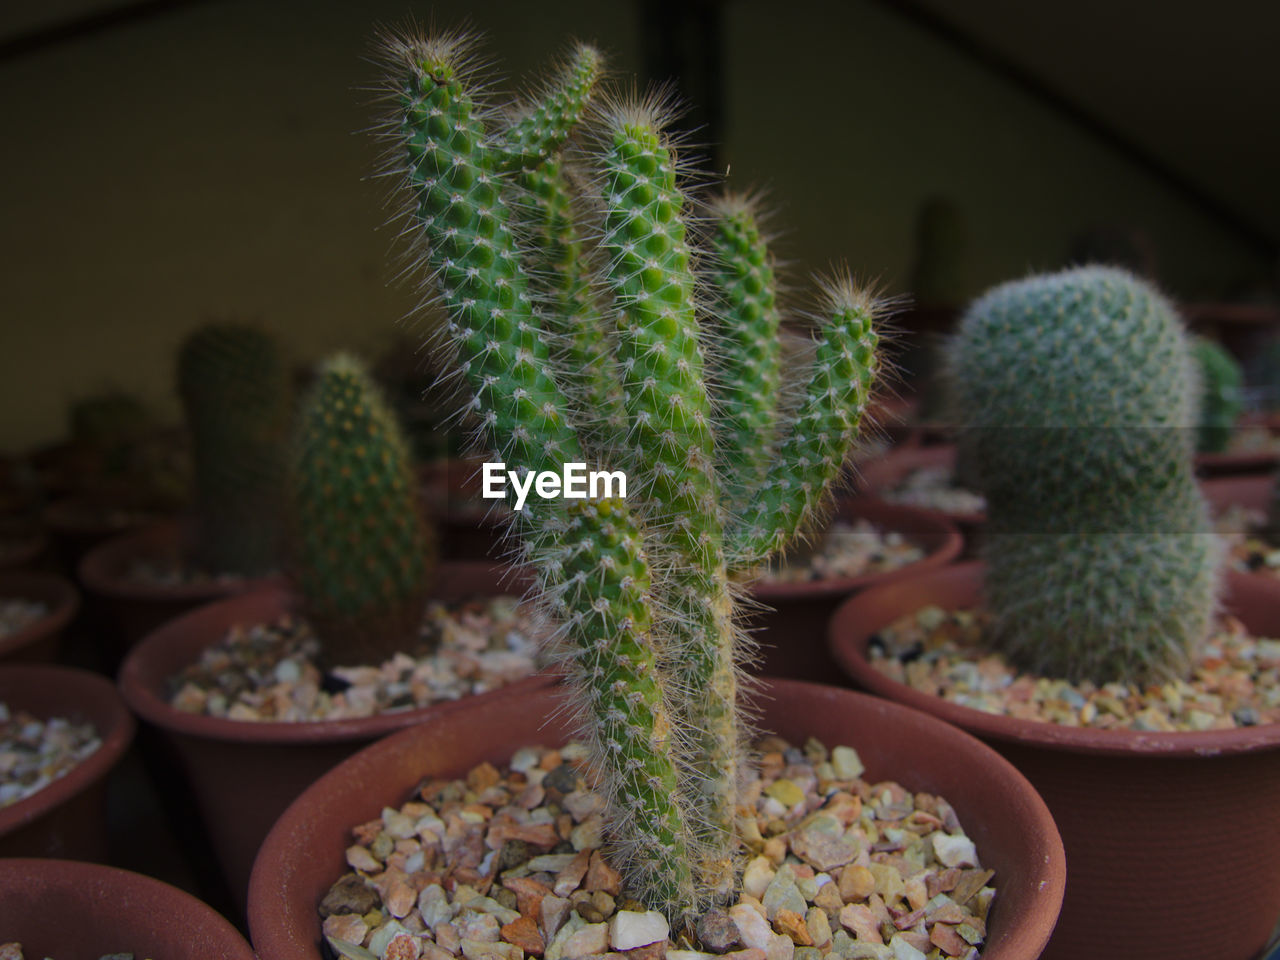 cactus, succulent plant, potted plant, growth, green color, close-up, no people, plant, thorn, focus on foreground, indoors, nature, spiked, day, beauty in nature, natural pattern, sharp, botany, selective focus, houseplant